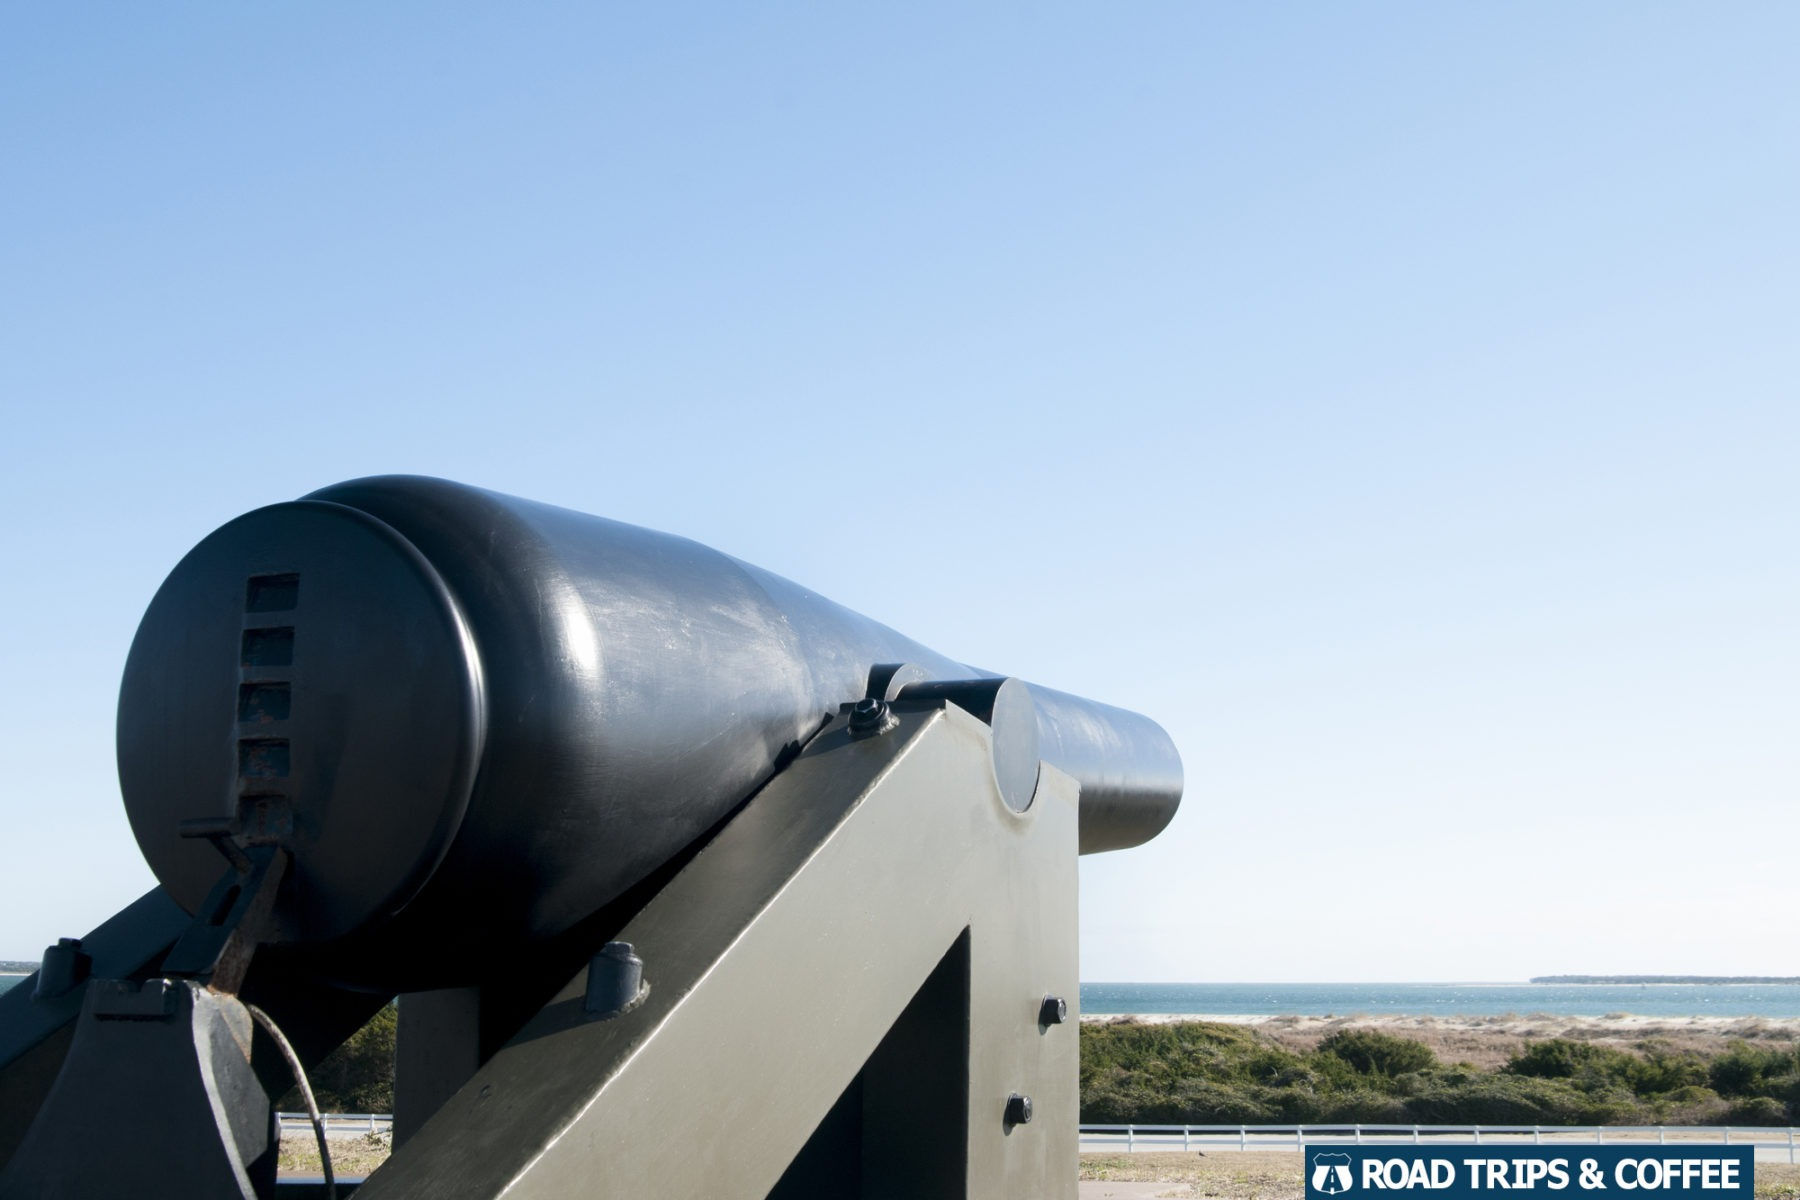 A large canon overlooking the distant Atlantic Ocean from the top of Fort Macon State Park in Atlantic Beach, North Carolina